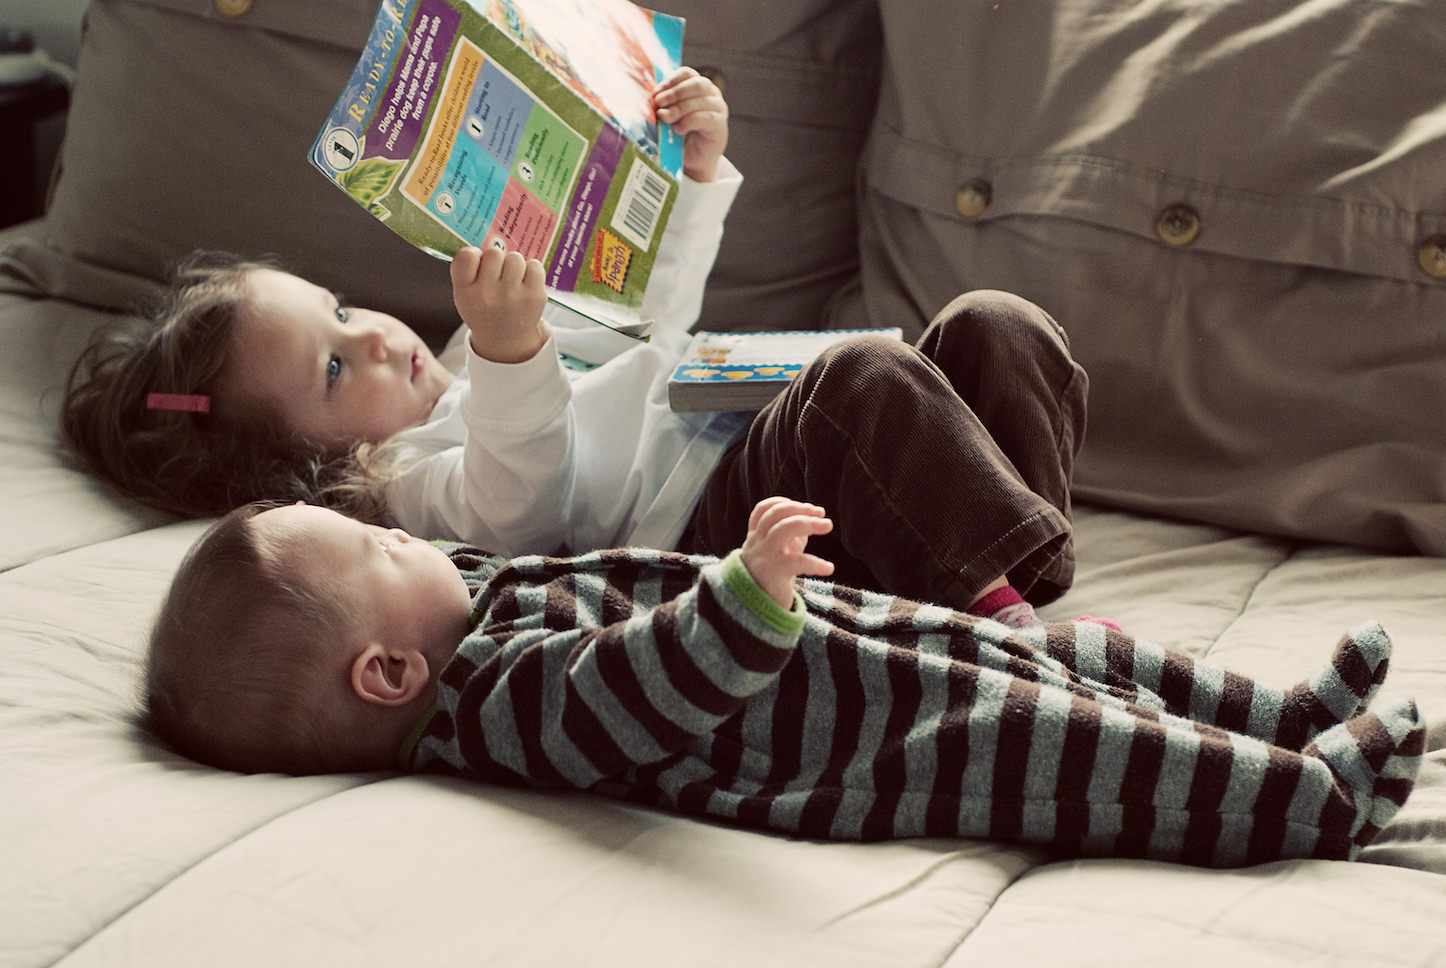 Little kids reading books is adorable